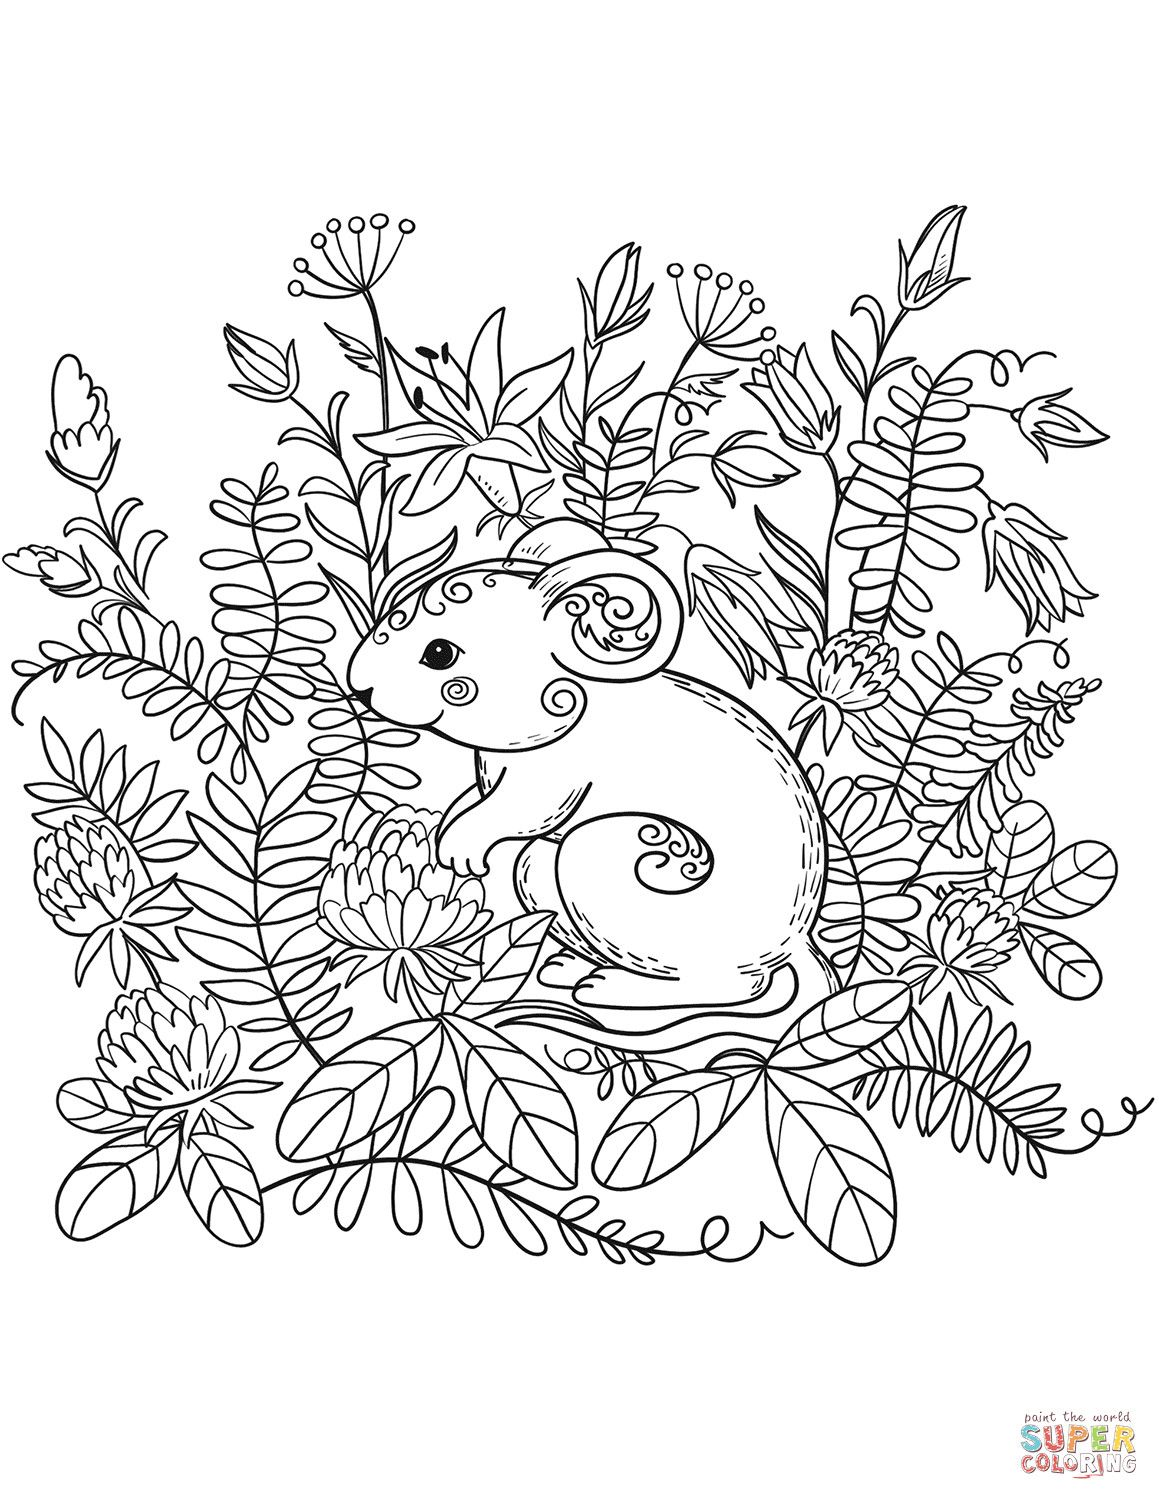 Mouse Coloring Page On Forest Animals Coloring Pages Cute